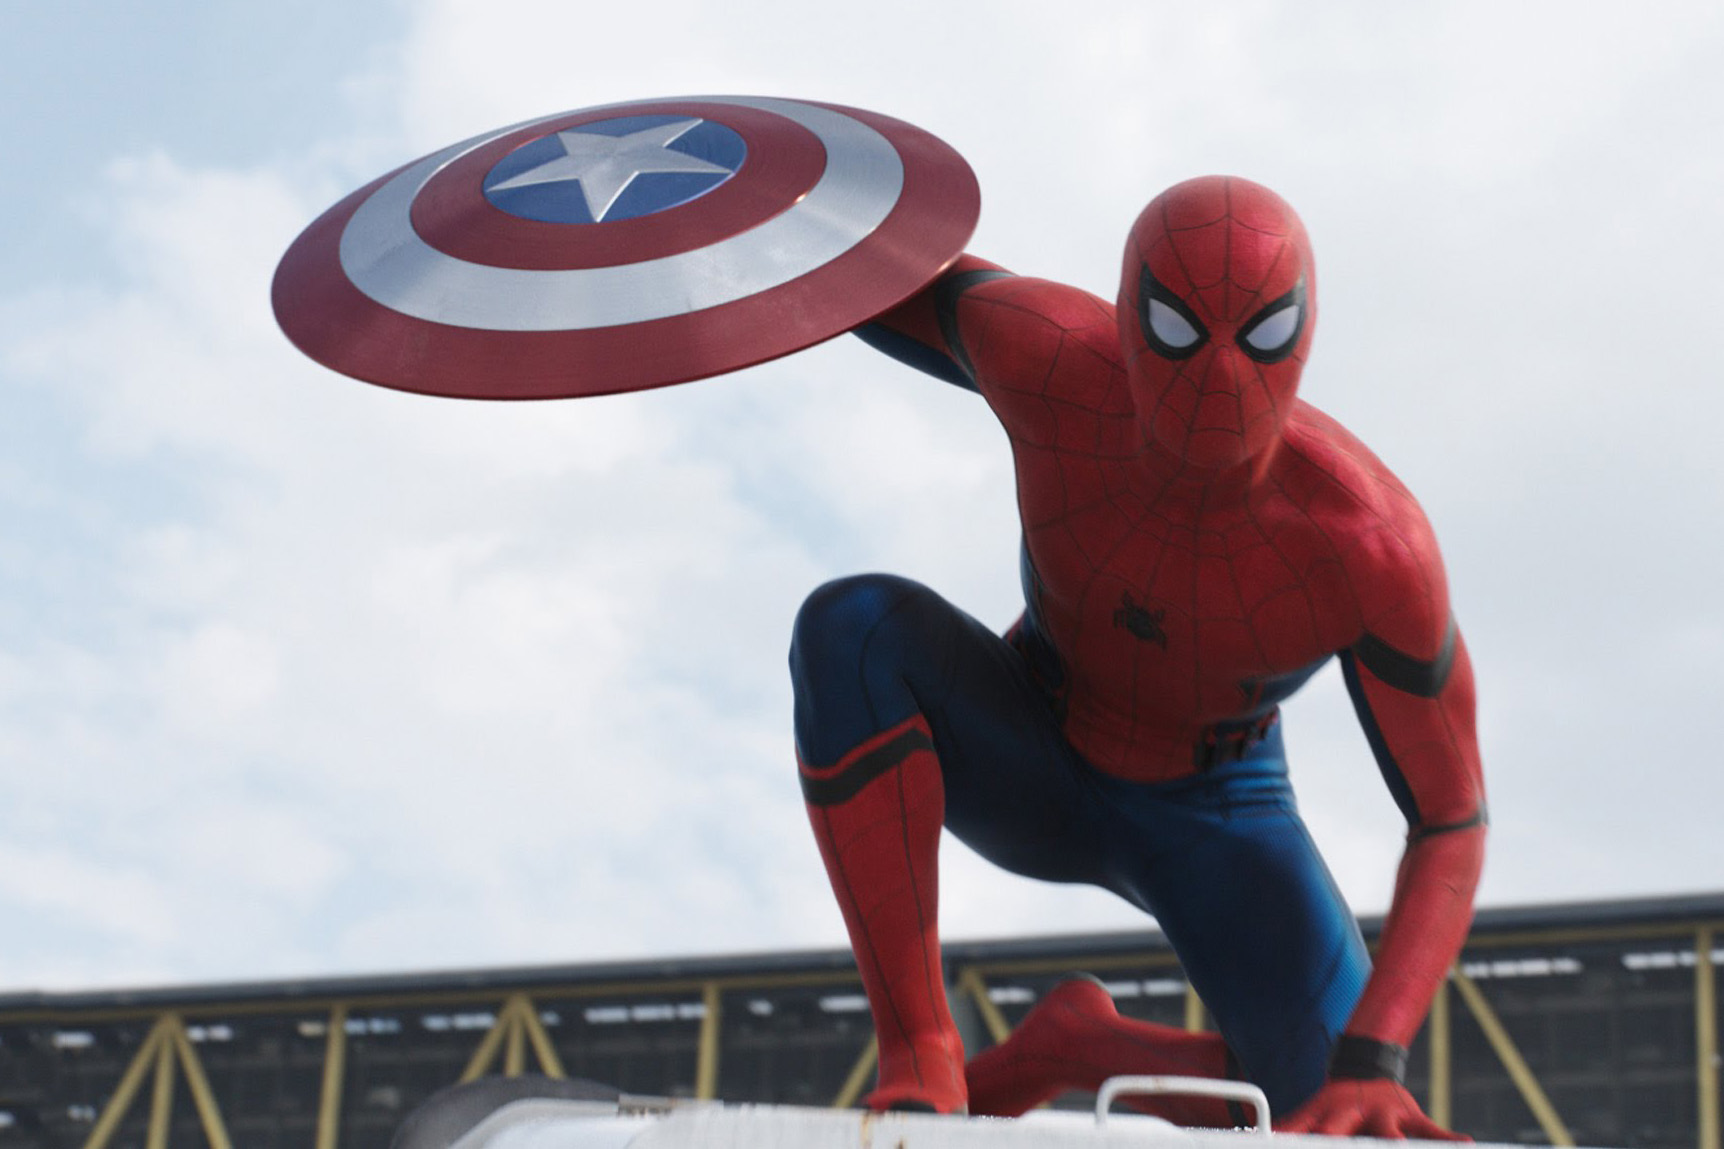 What We Know So Far About the Upcoming 'Spider-Man Homecoming' Movie